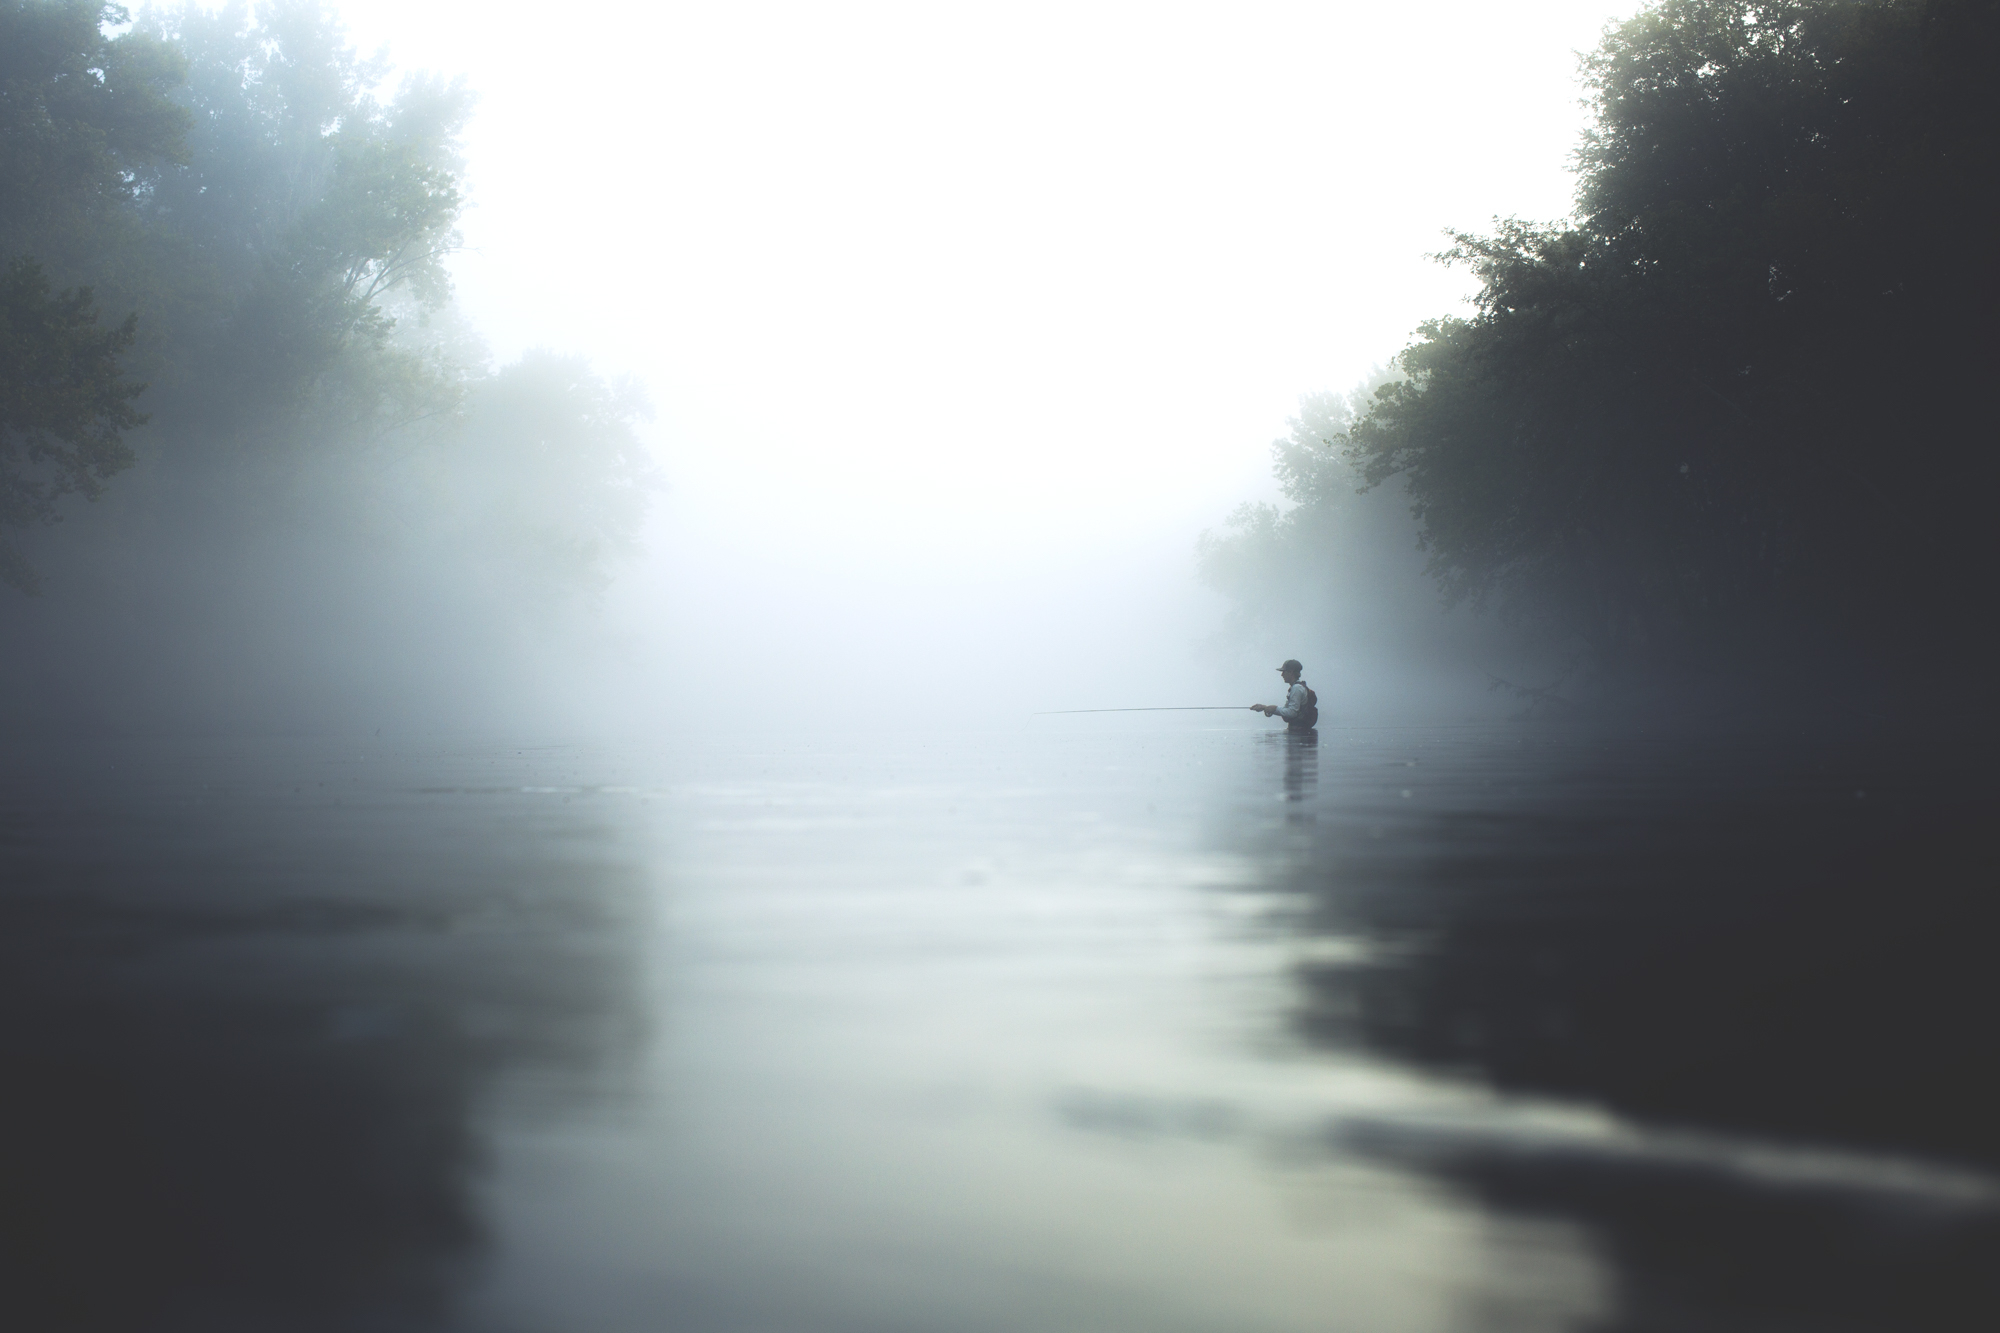 This isn't the only misty morning image from photographer Matt Shaw that was a favorite of this year's judges. Hailing from Tennessee, Shaw presumably has no shortage of waterways that offering up misty mornings as seen in this and many other of Shaw's shots. Capturing the grace and serenity of those morning moments, however, is no easy task, but Matt seems to do it with ease.